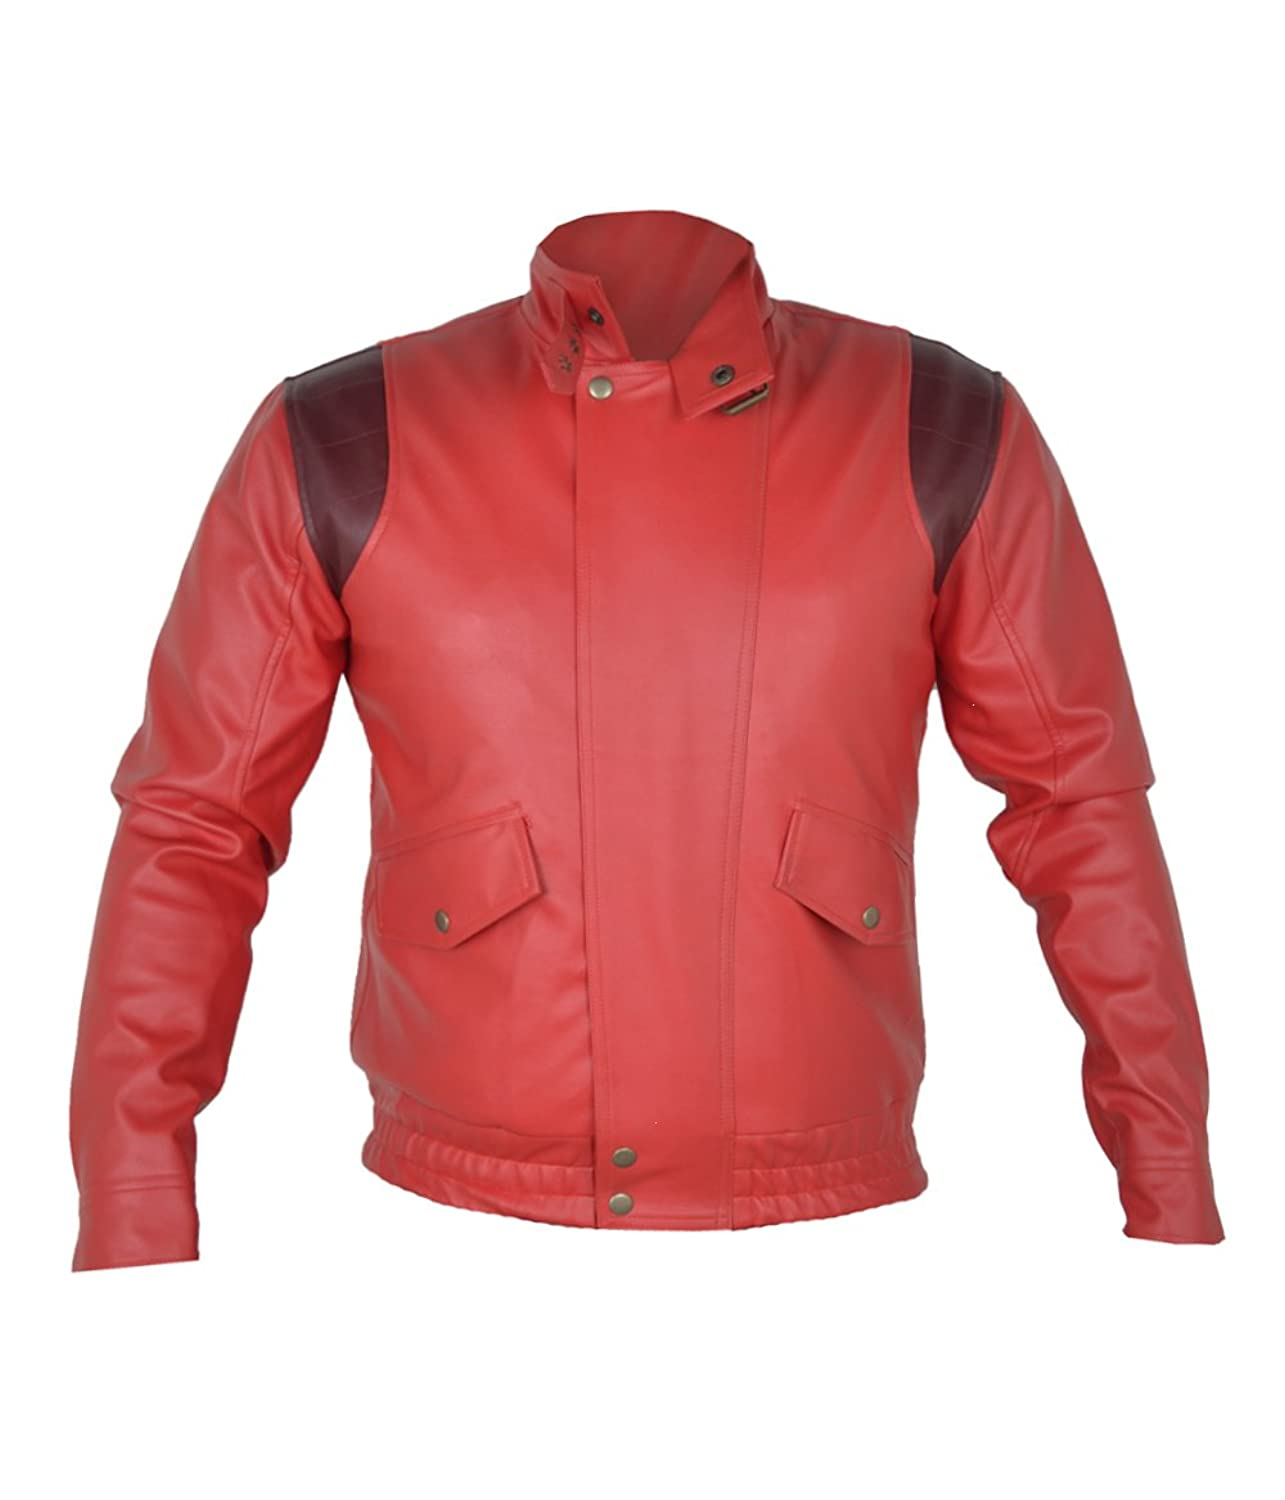 Akira Manga V3 Full Red Real Sheep Leather Jacket With Capsule only